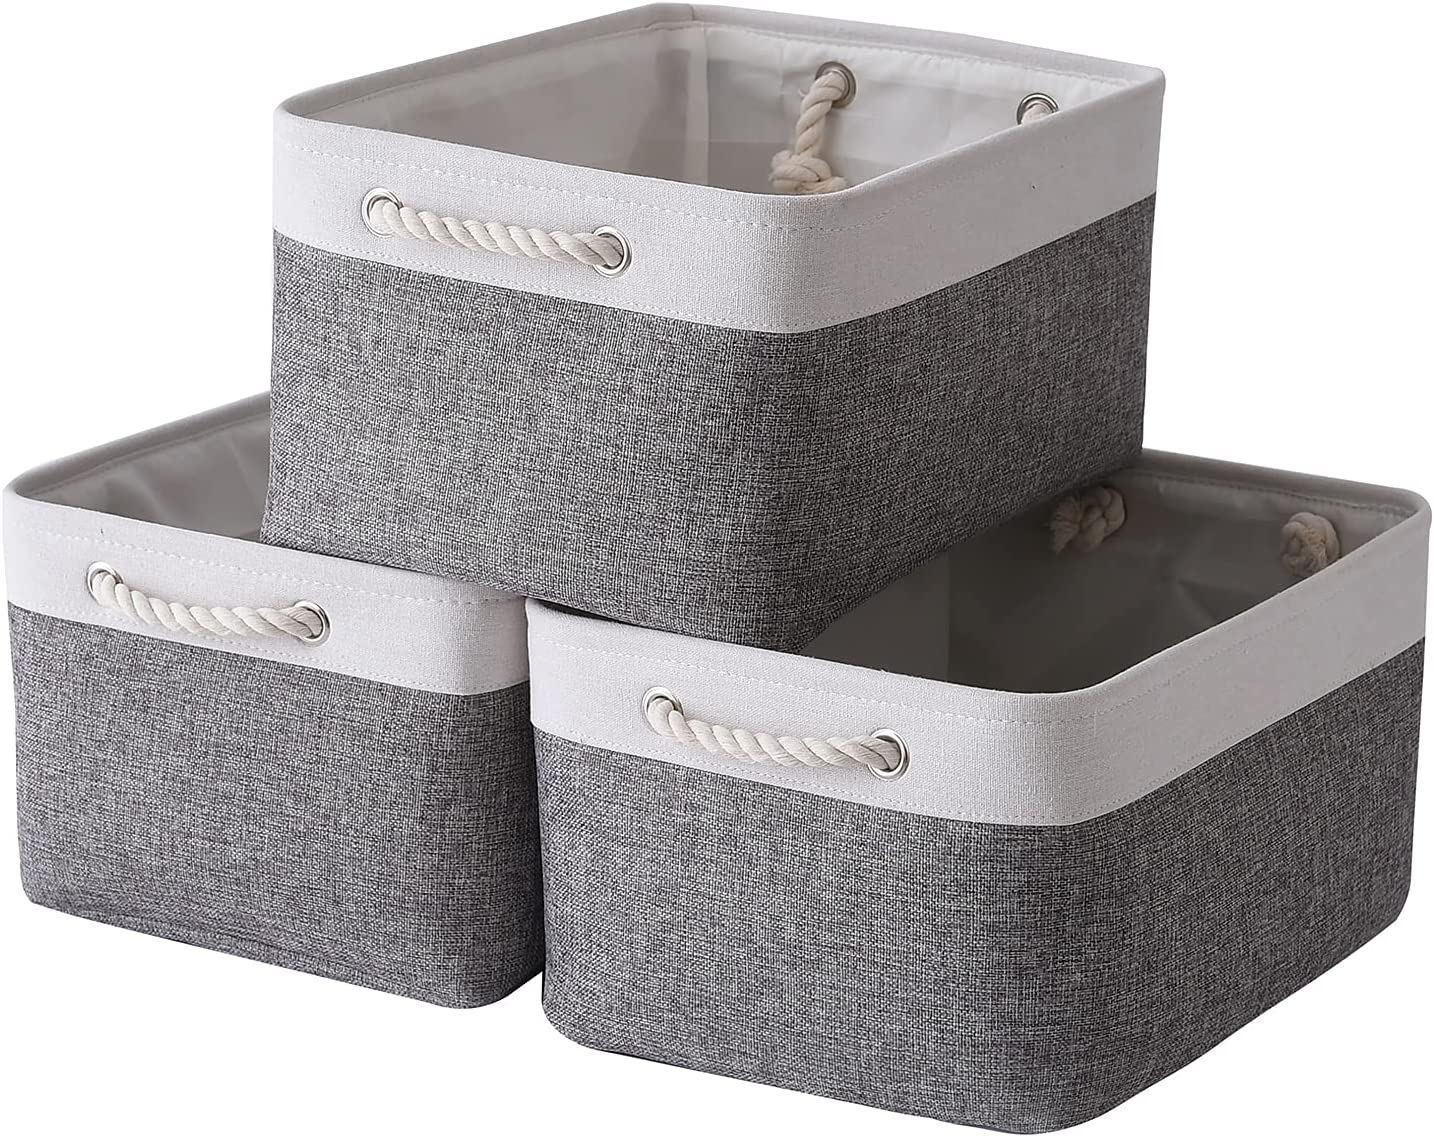 TcaFmac Small Fabric Storage Baskets for Organizing [3 Pack] Clo